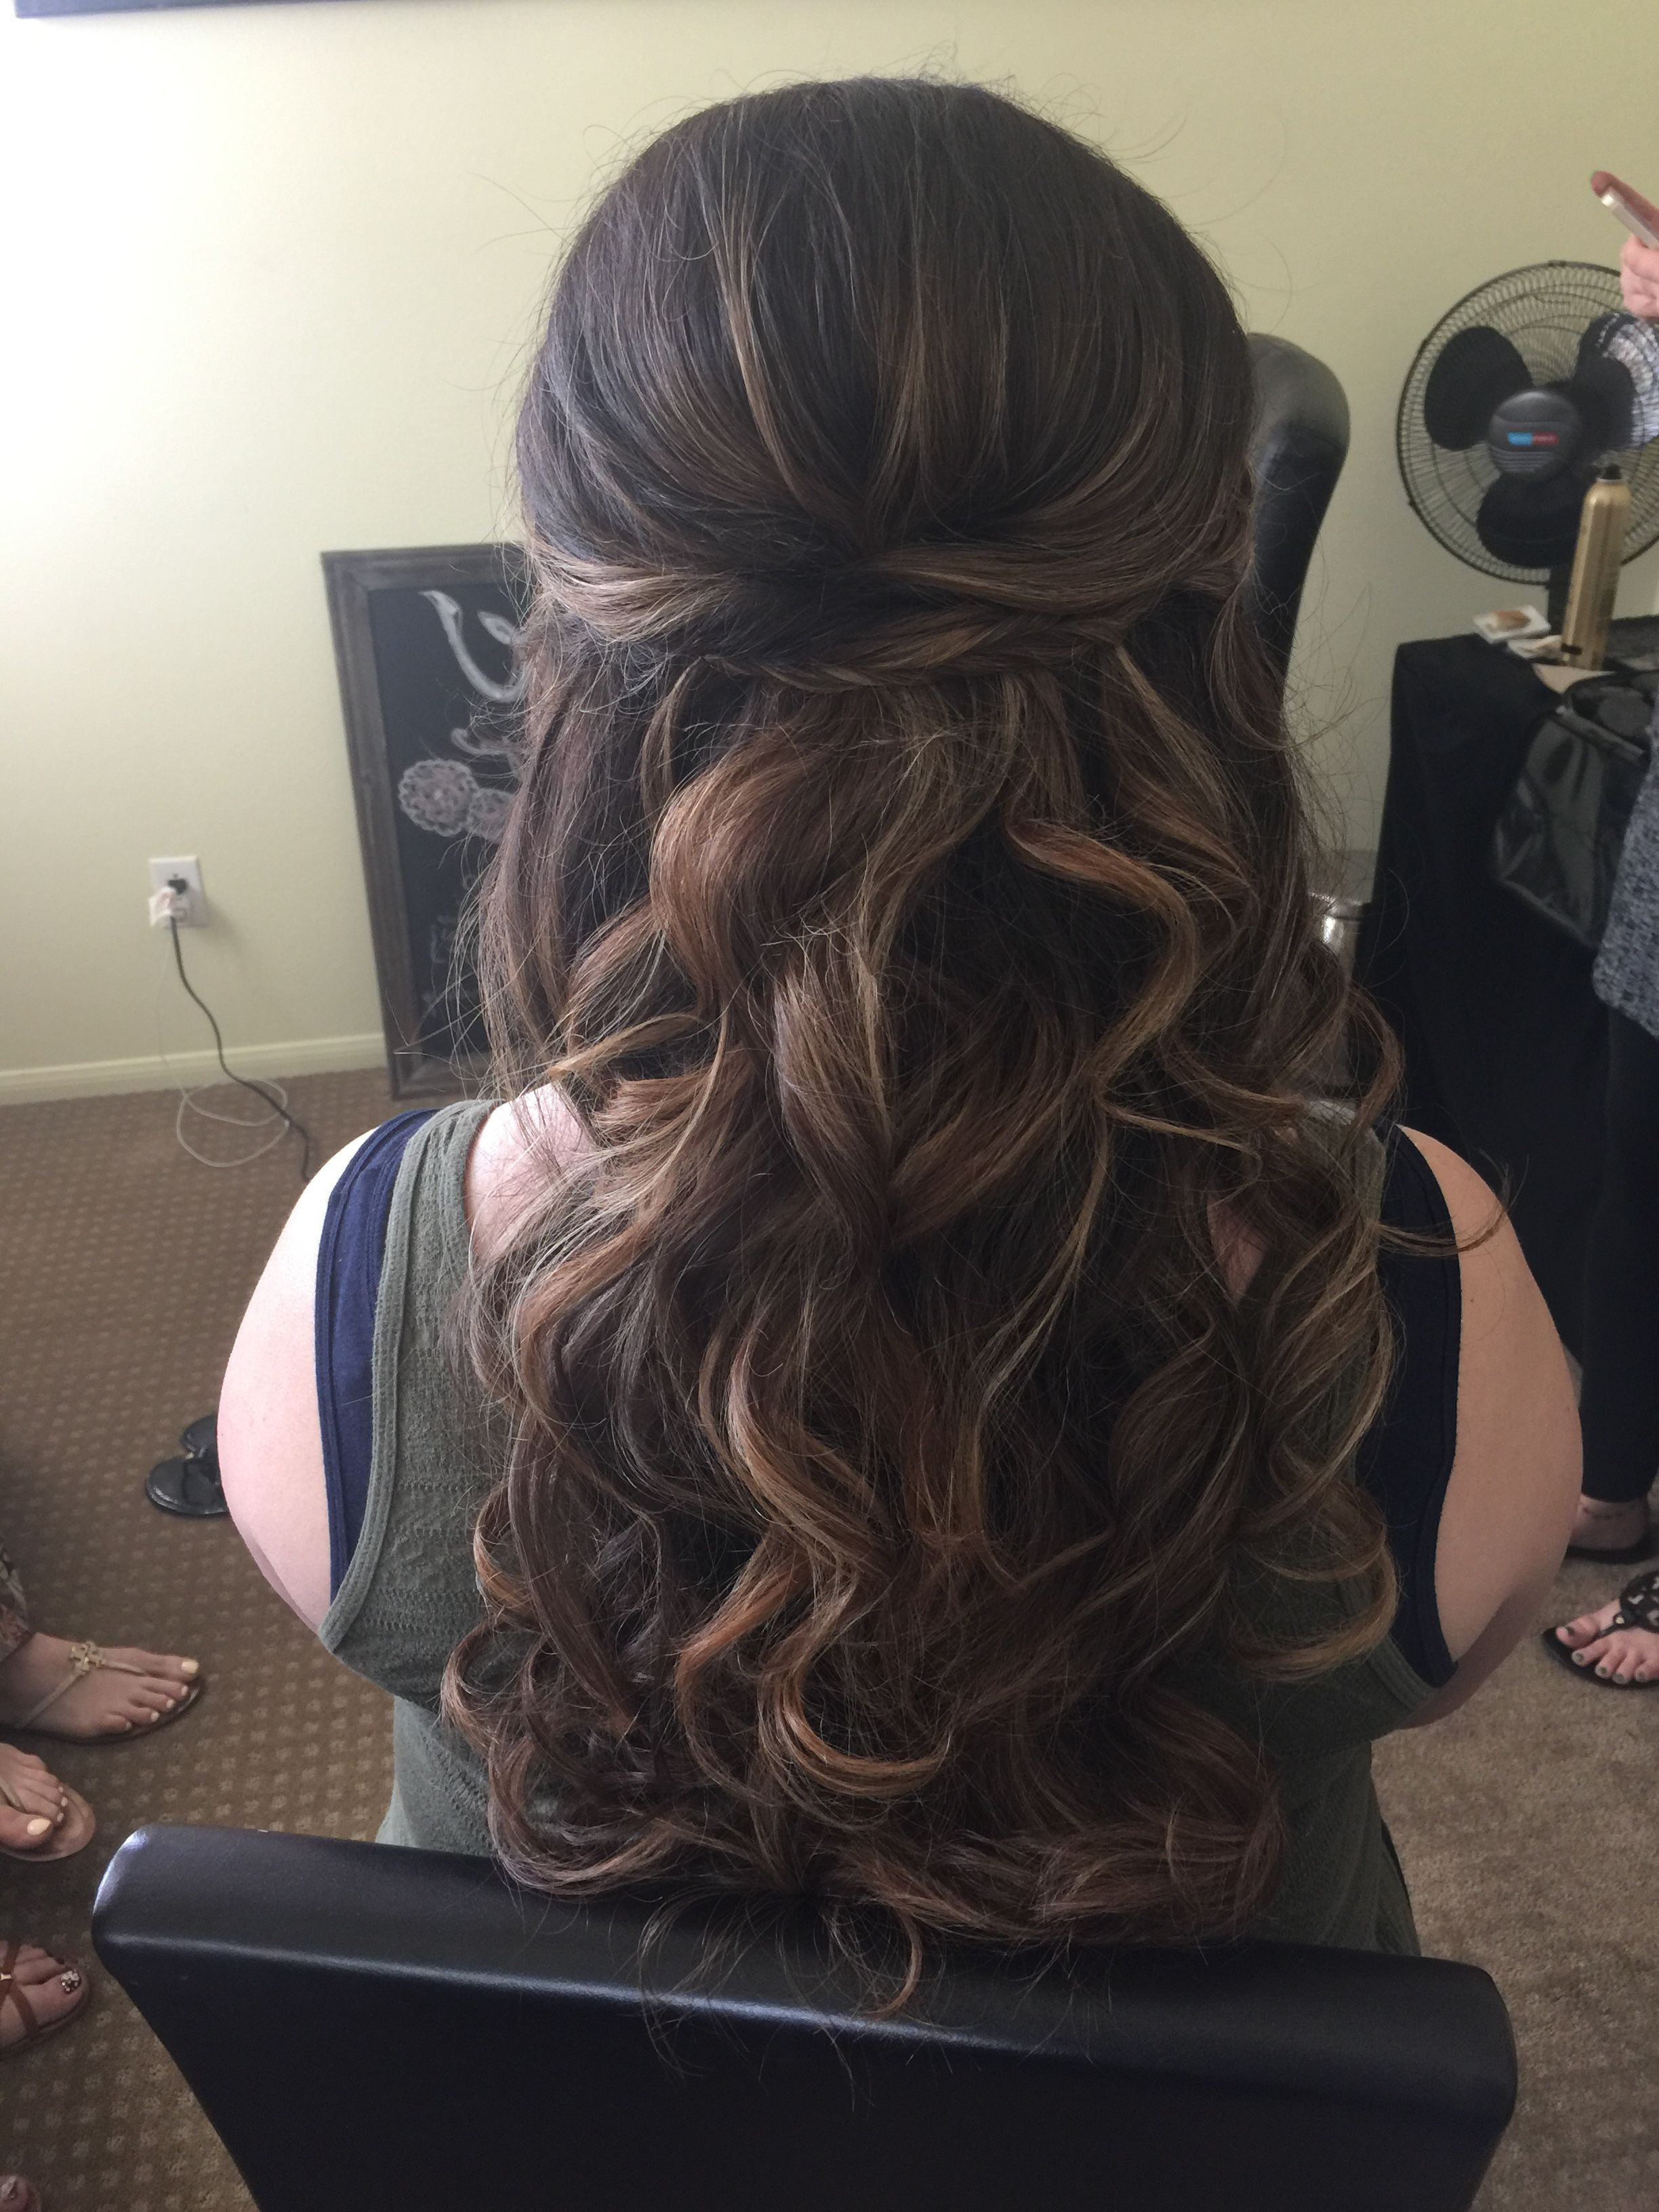 Fashion : Hairstyle Half Up Half Down Curly Enchanting Prom Pertaining To Trendy Elegant Curled Prom Hairstyles (Gallery 18 of 20)